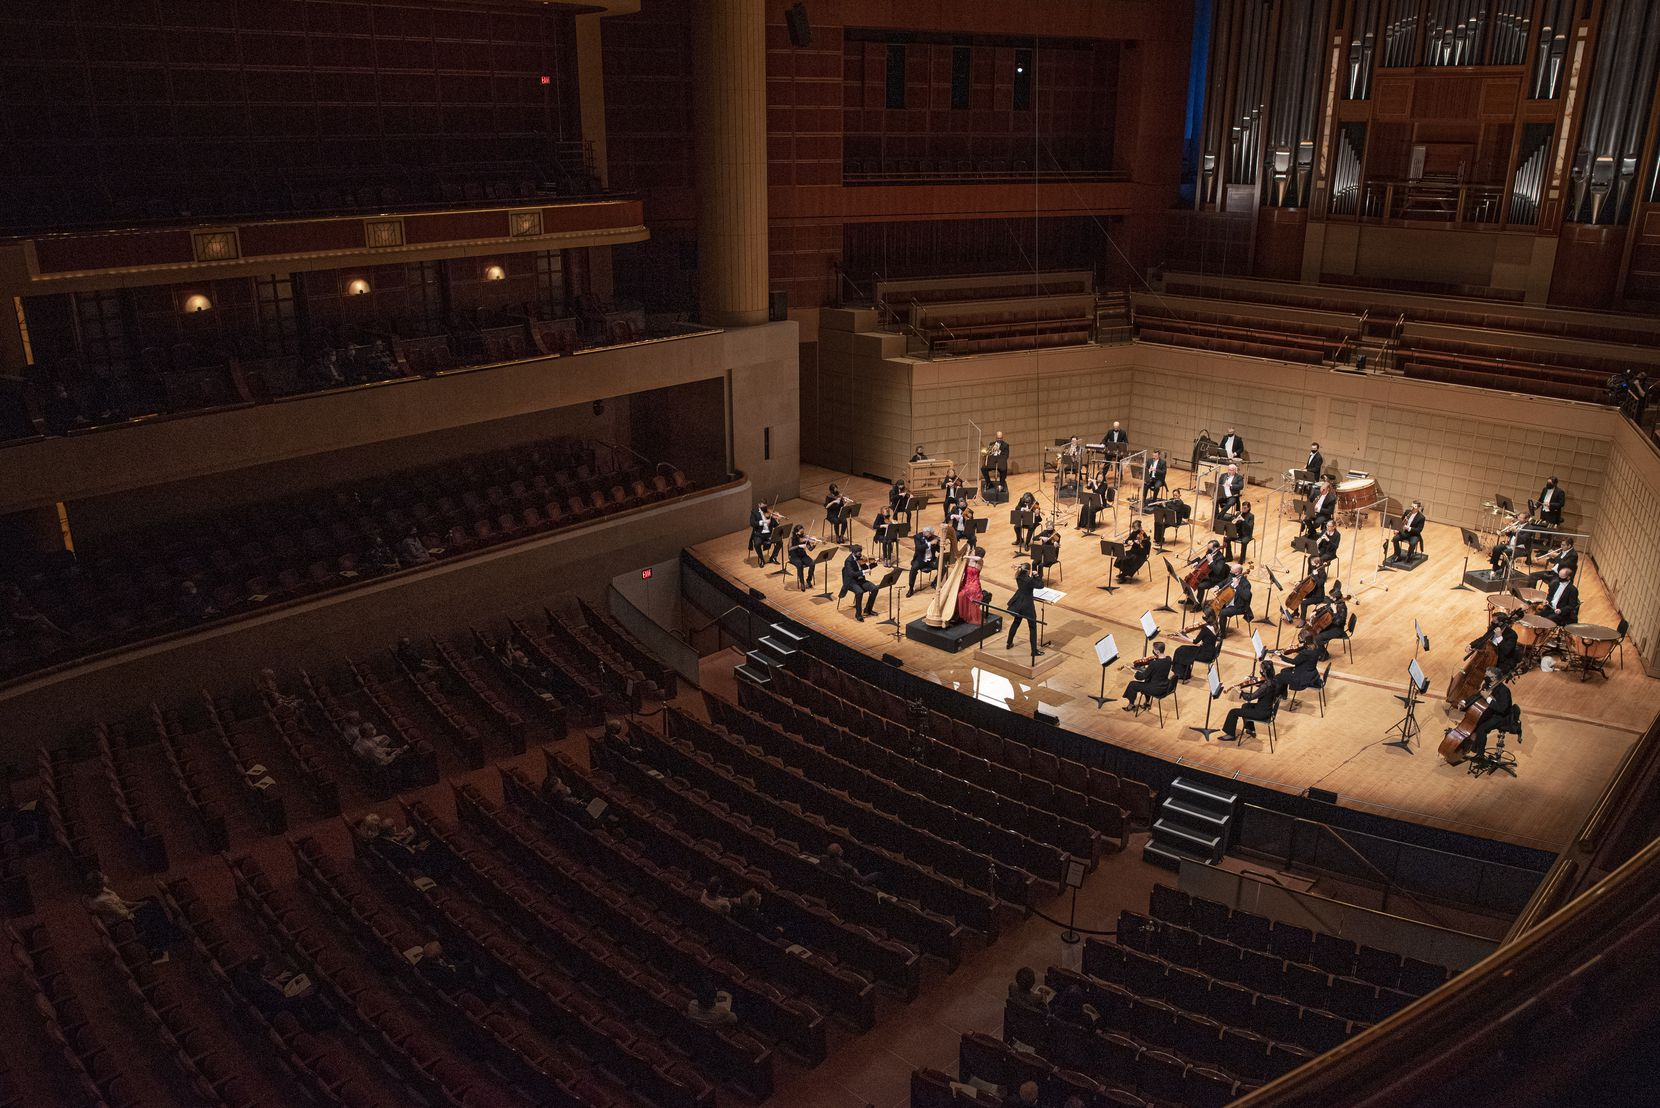 A crowd of under 100 DSO subscribers listen to harpist Emily Levin perform Ginastera's Harp Concerto with principal guest conductor Gemma New and the Dallas Symphony Orchestra at the Morton H. Meyerson Symphony Center in downtown Dallas, Sept. 24, 2020.